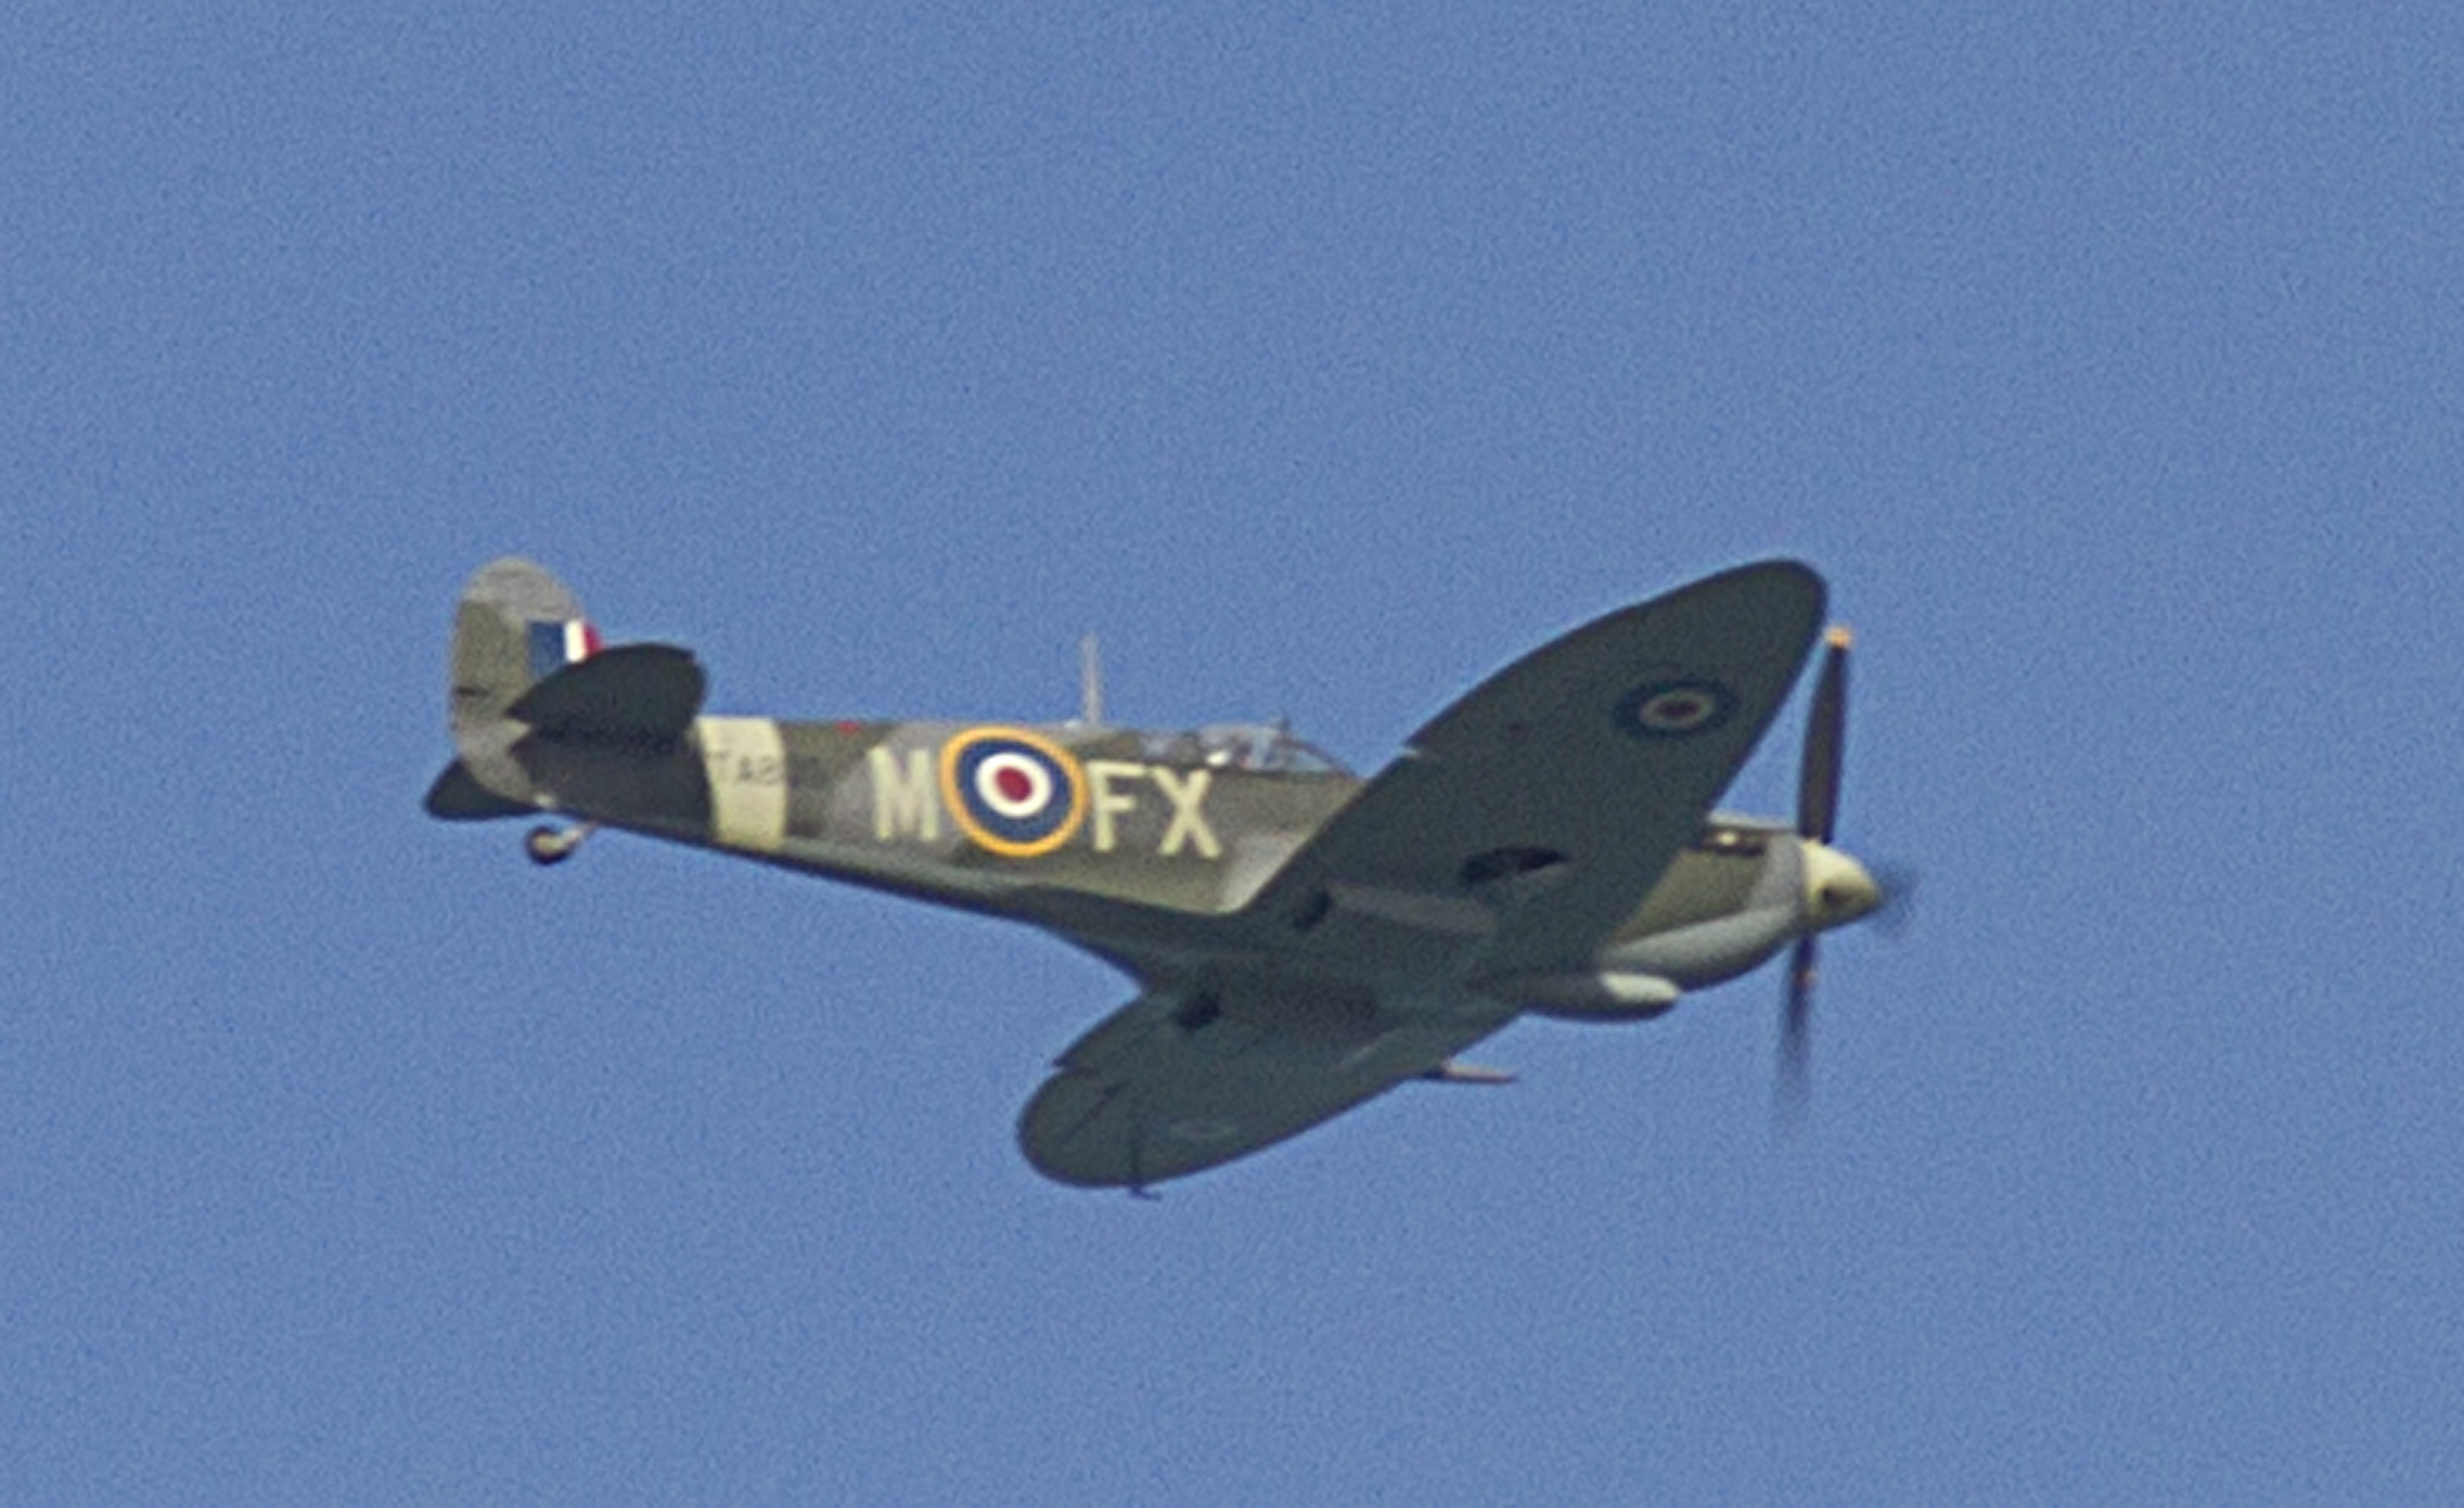 Dan Griffiths in his Spitfire from Biggin Hill